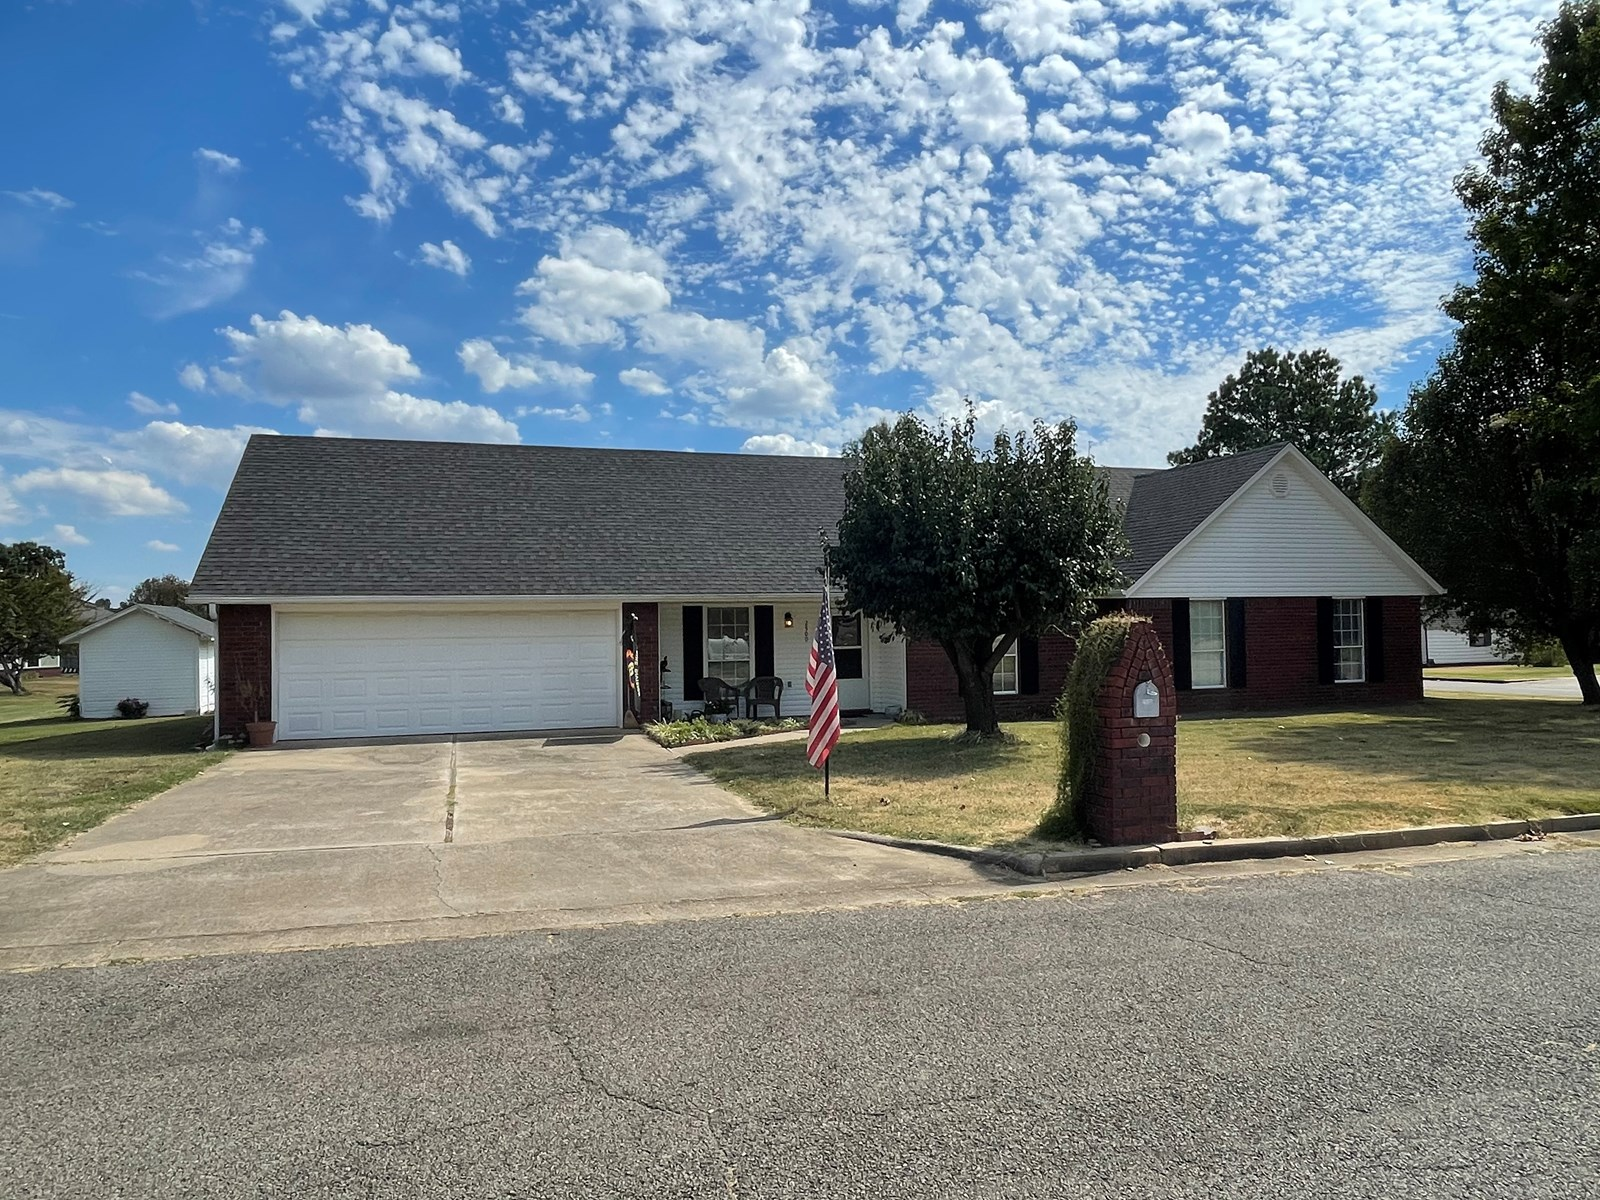 3 BEDROOM 2 .5 BATH HOME FOR SALE IN POTEAU, OK